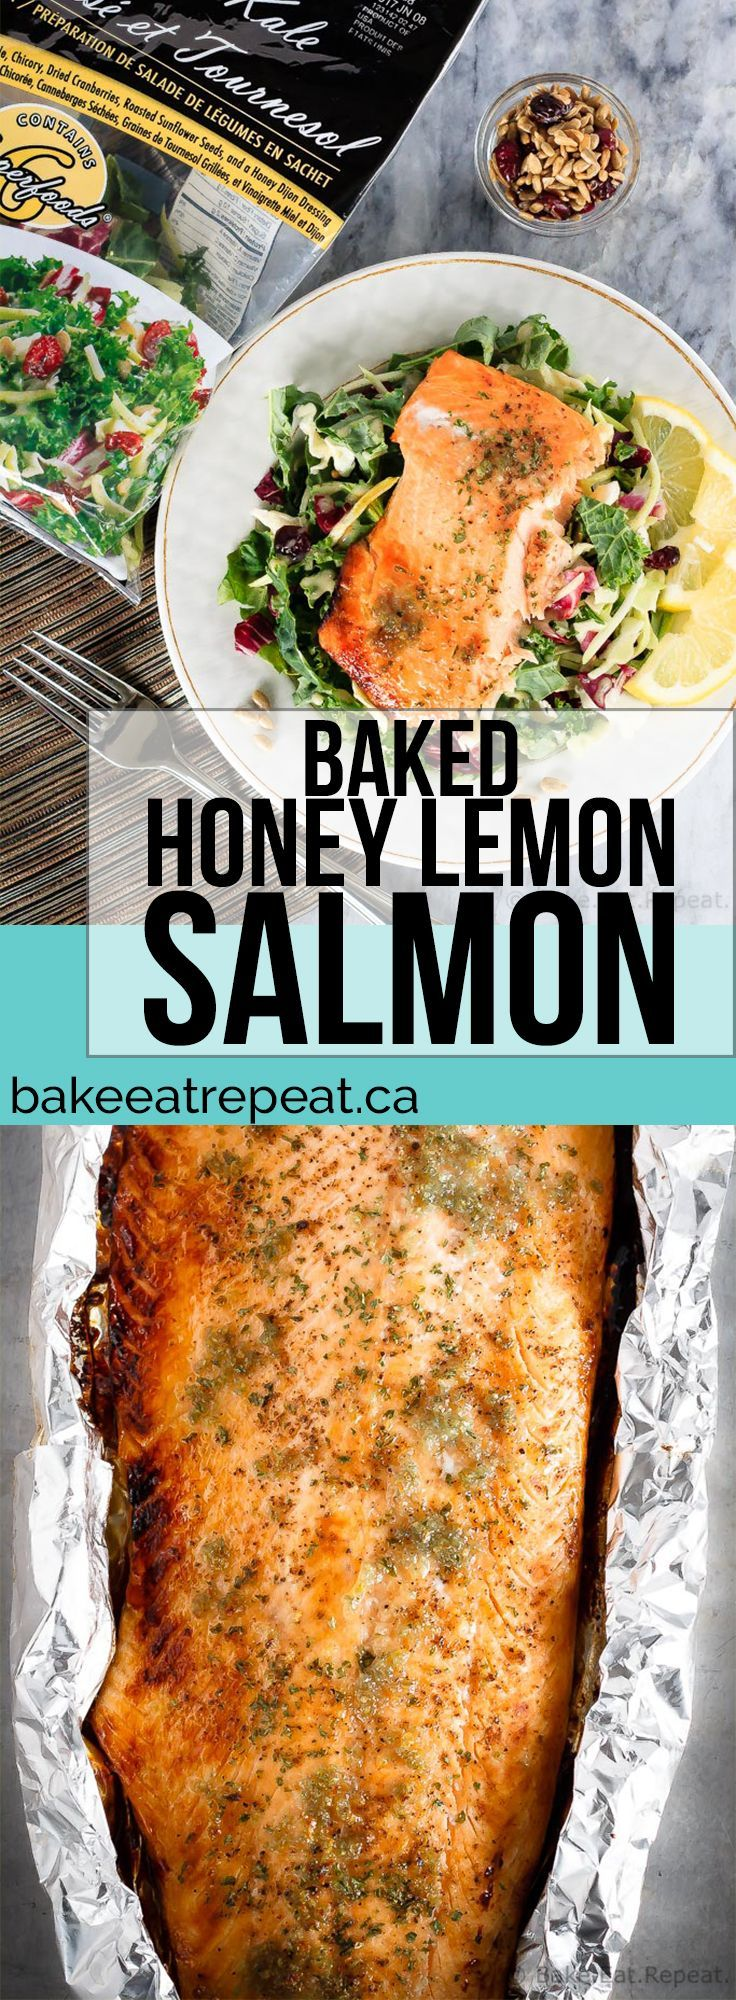 This honey lemon baked salmon with a sunflower kale salad is quick and easy to make and you will love it! A 30 minute meal you'll make again and again! [sponsored]